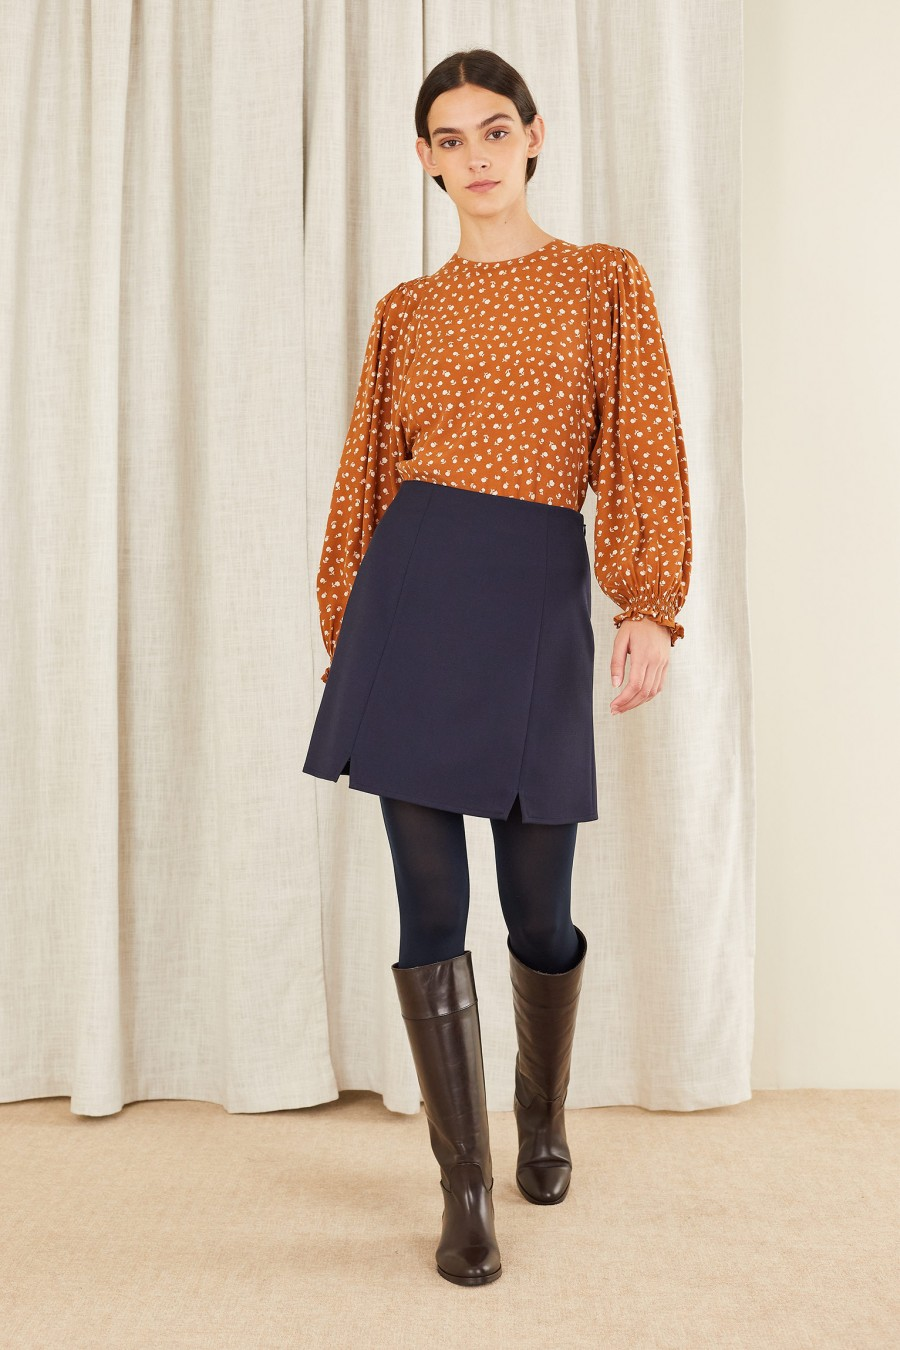 autumn look with skirt and boots